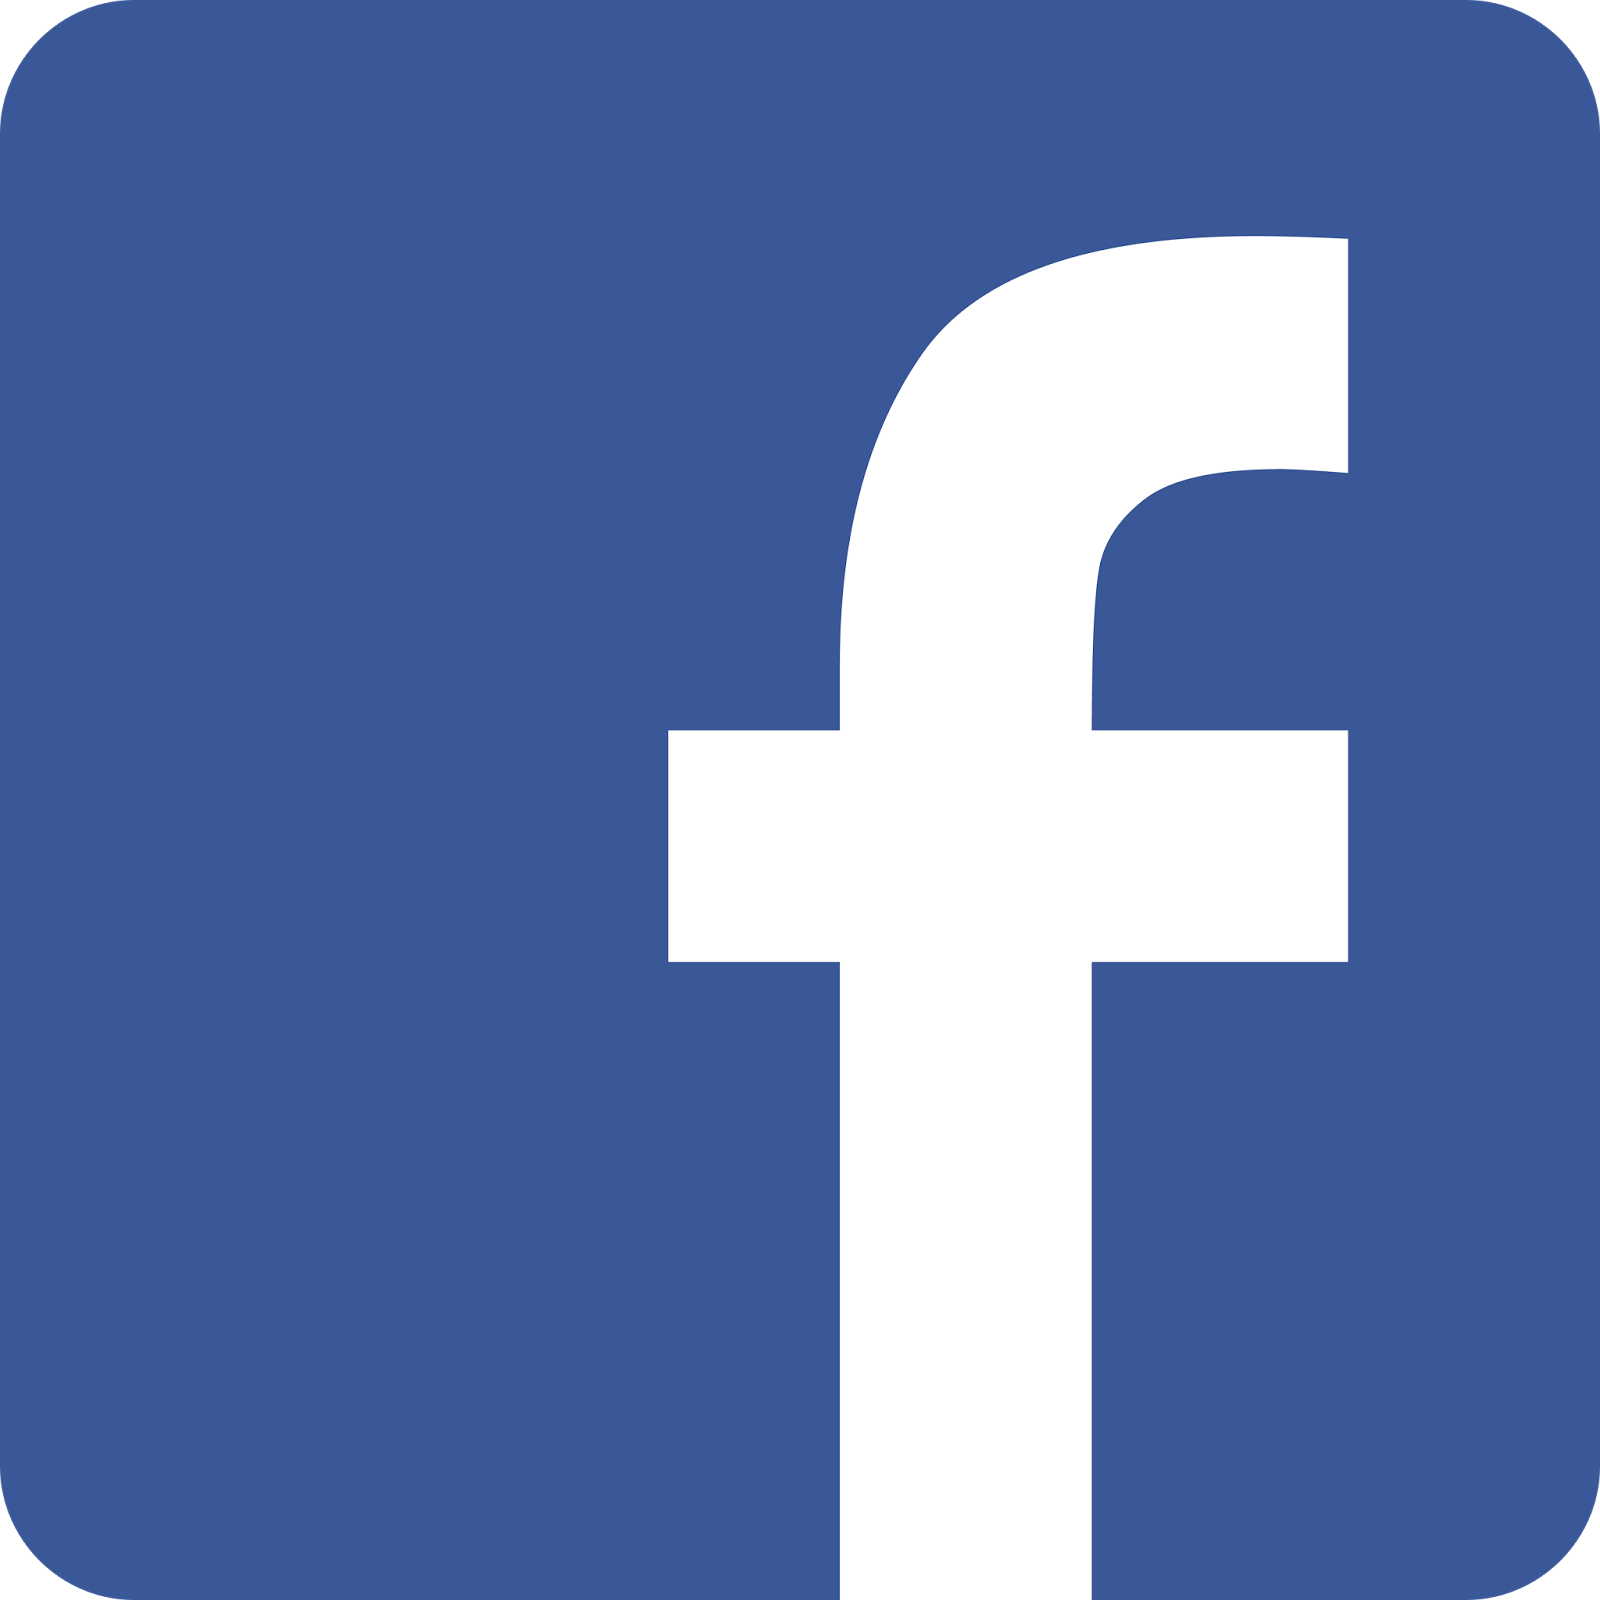 Facebookicon (wecompress.com).png